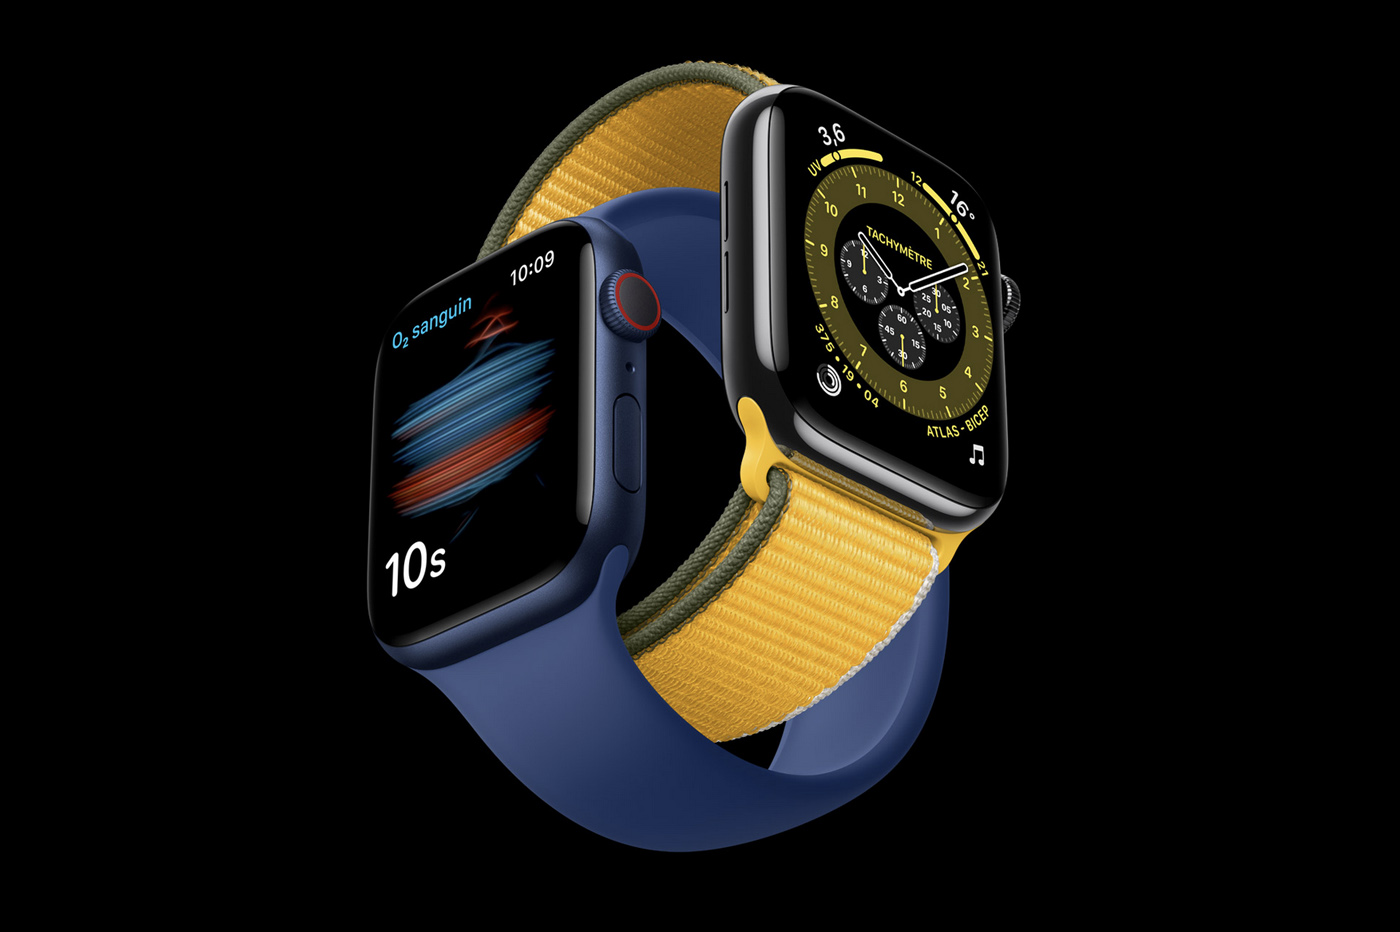 Apple Watch Series 7: available in two sizes of 41 and 45mm?